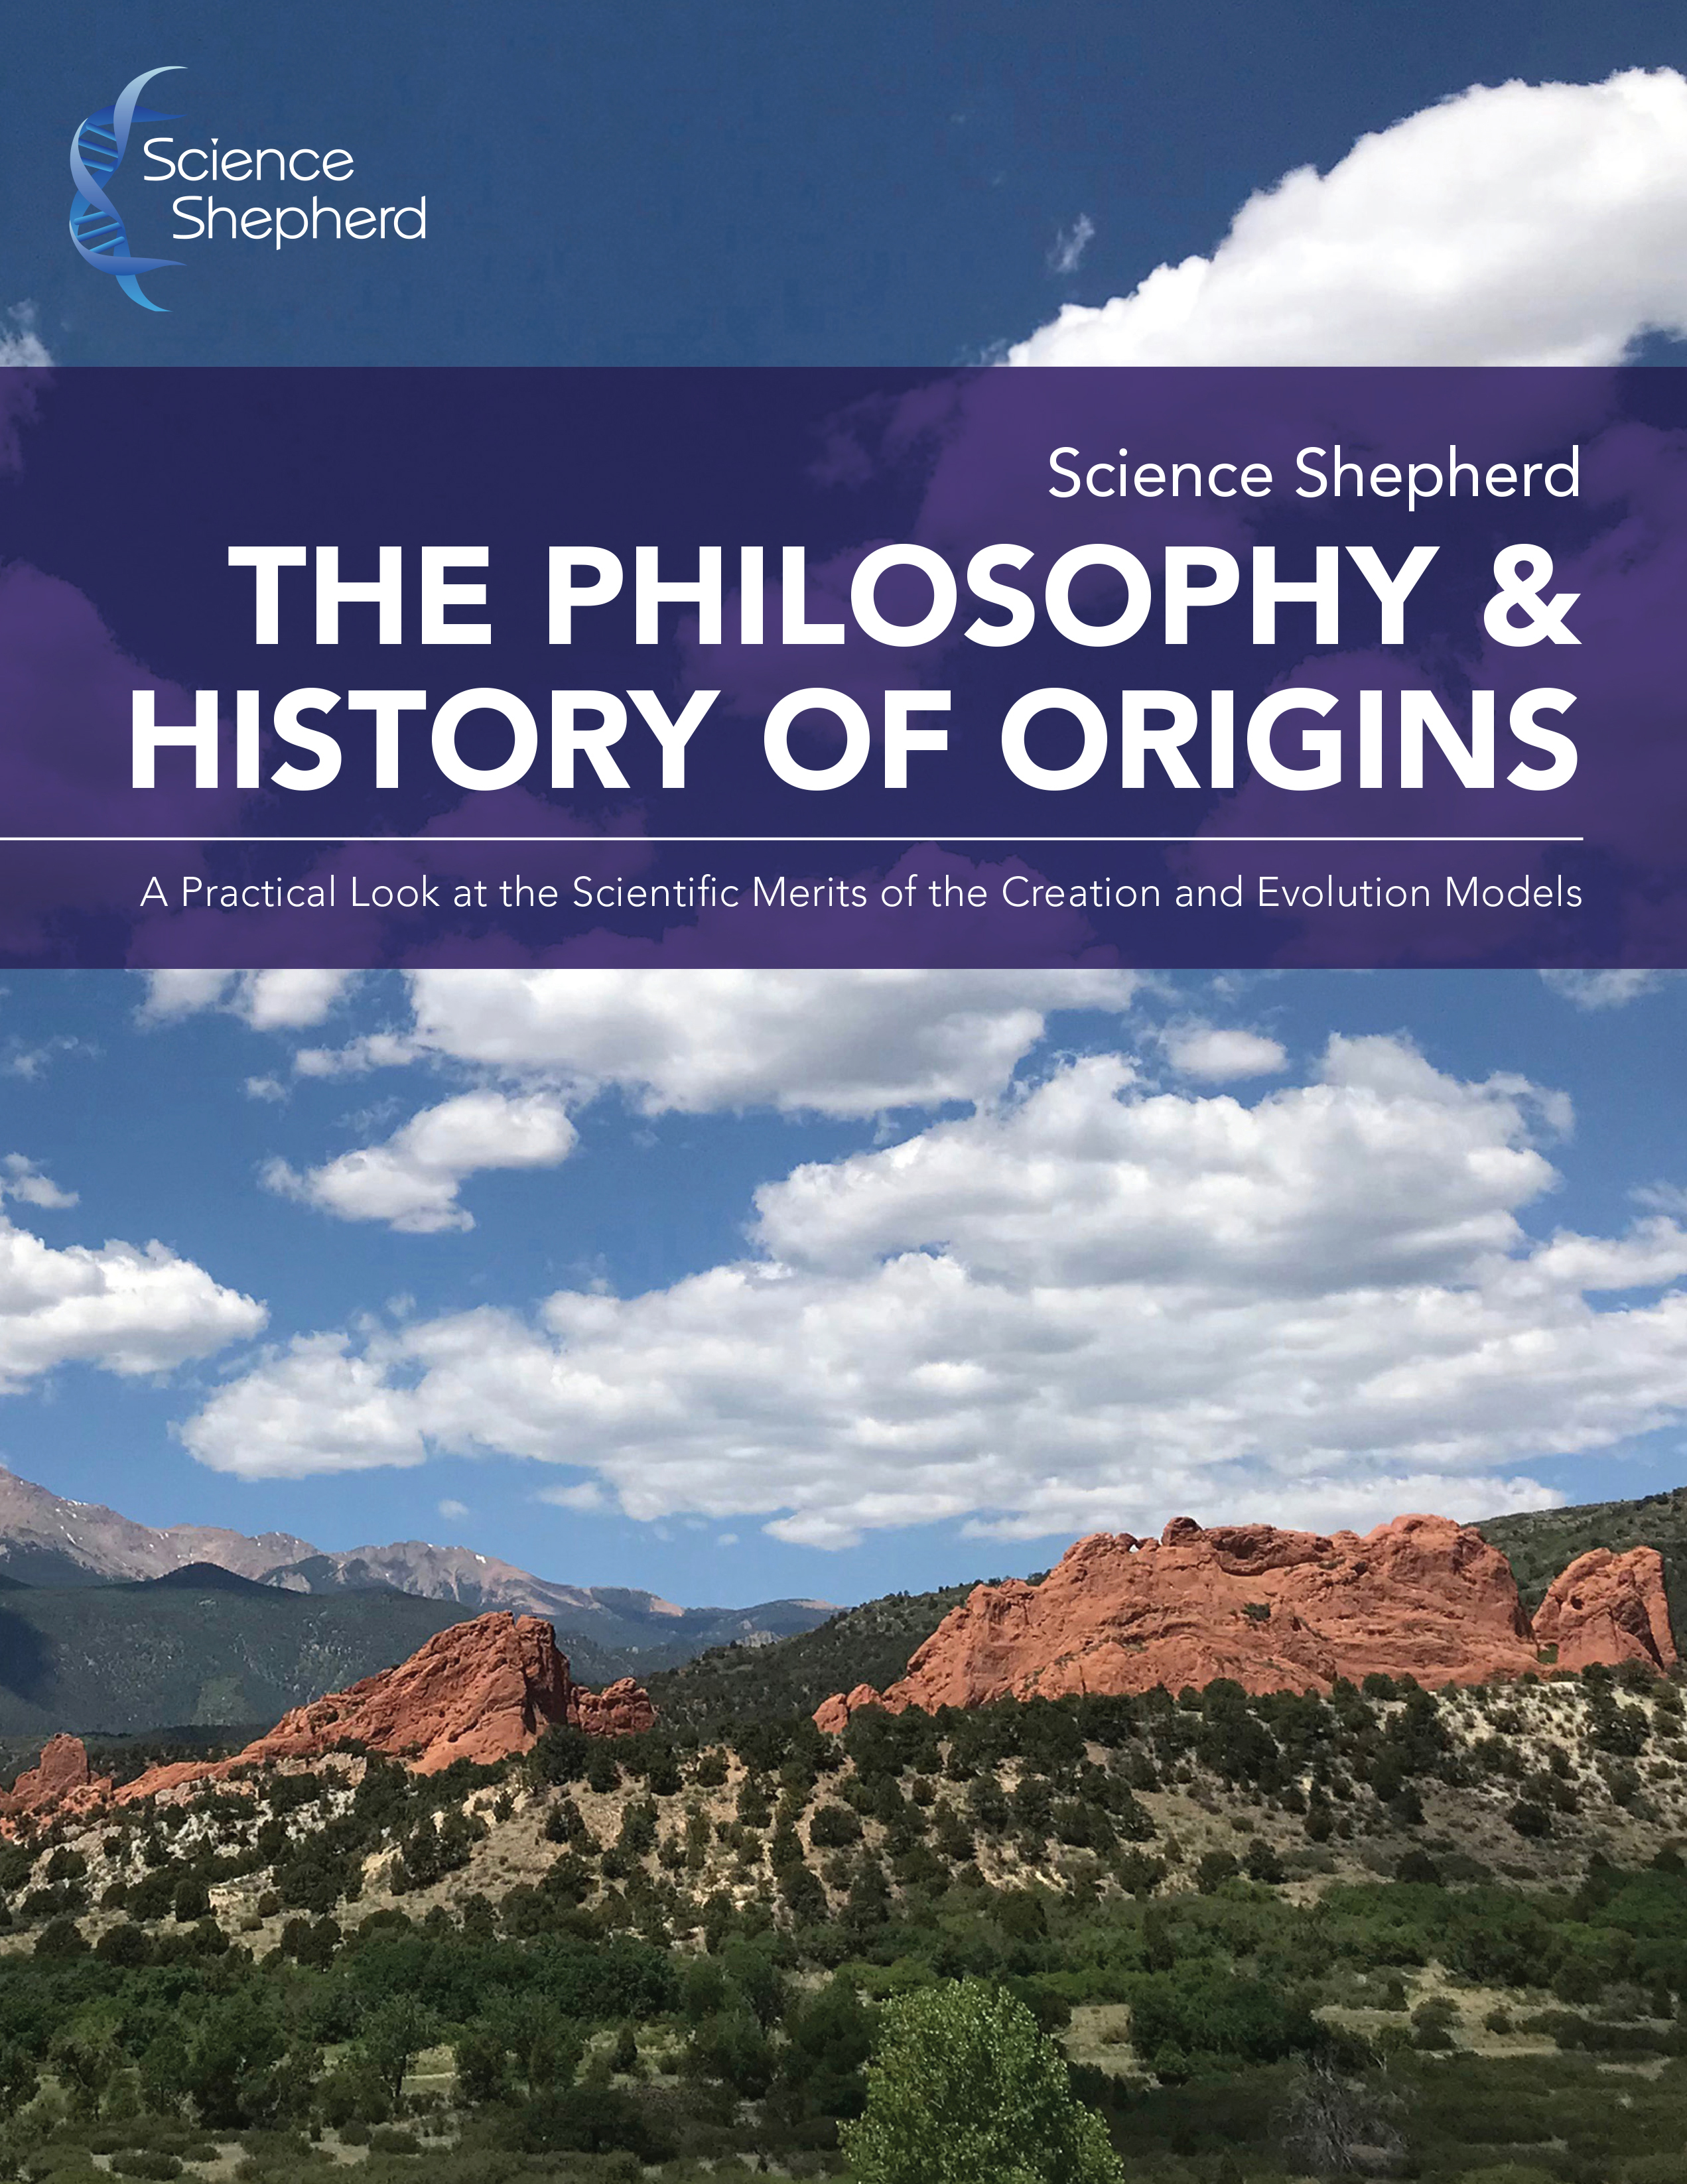 The Philosophy & History of Origins